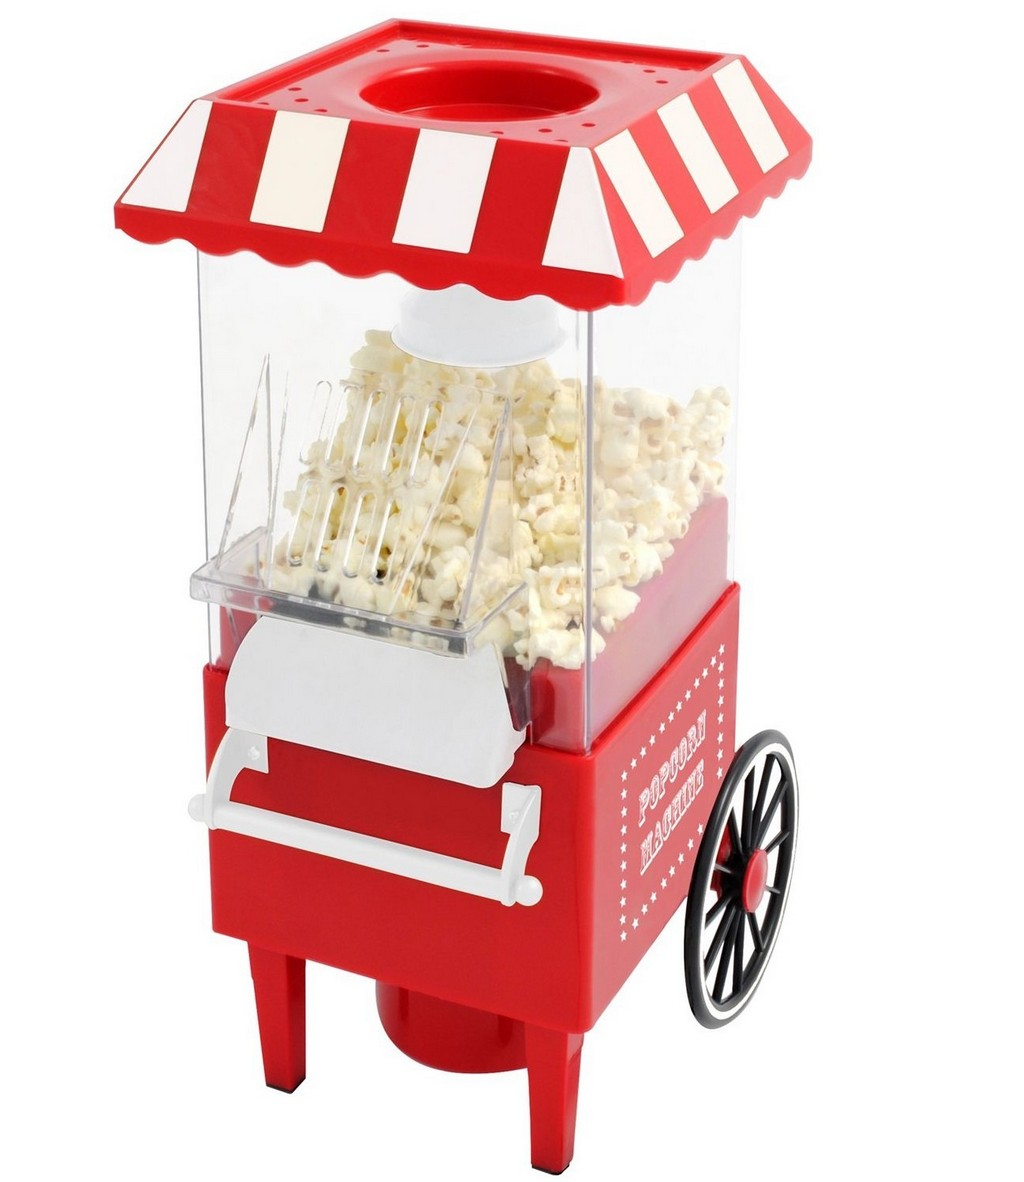 benchmark usa hollywood popcorn machine, antique fireplace popcorn poppers, waring pro popcorn machine